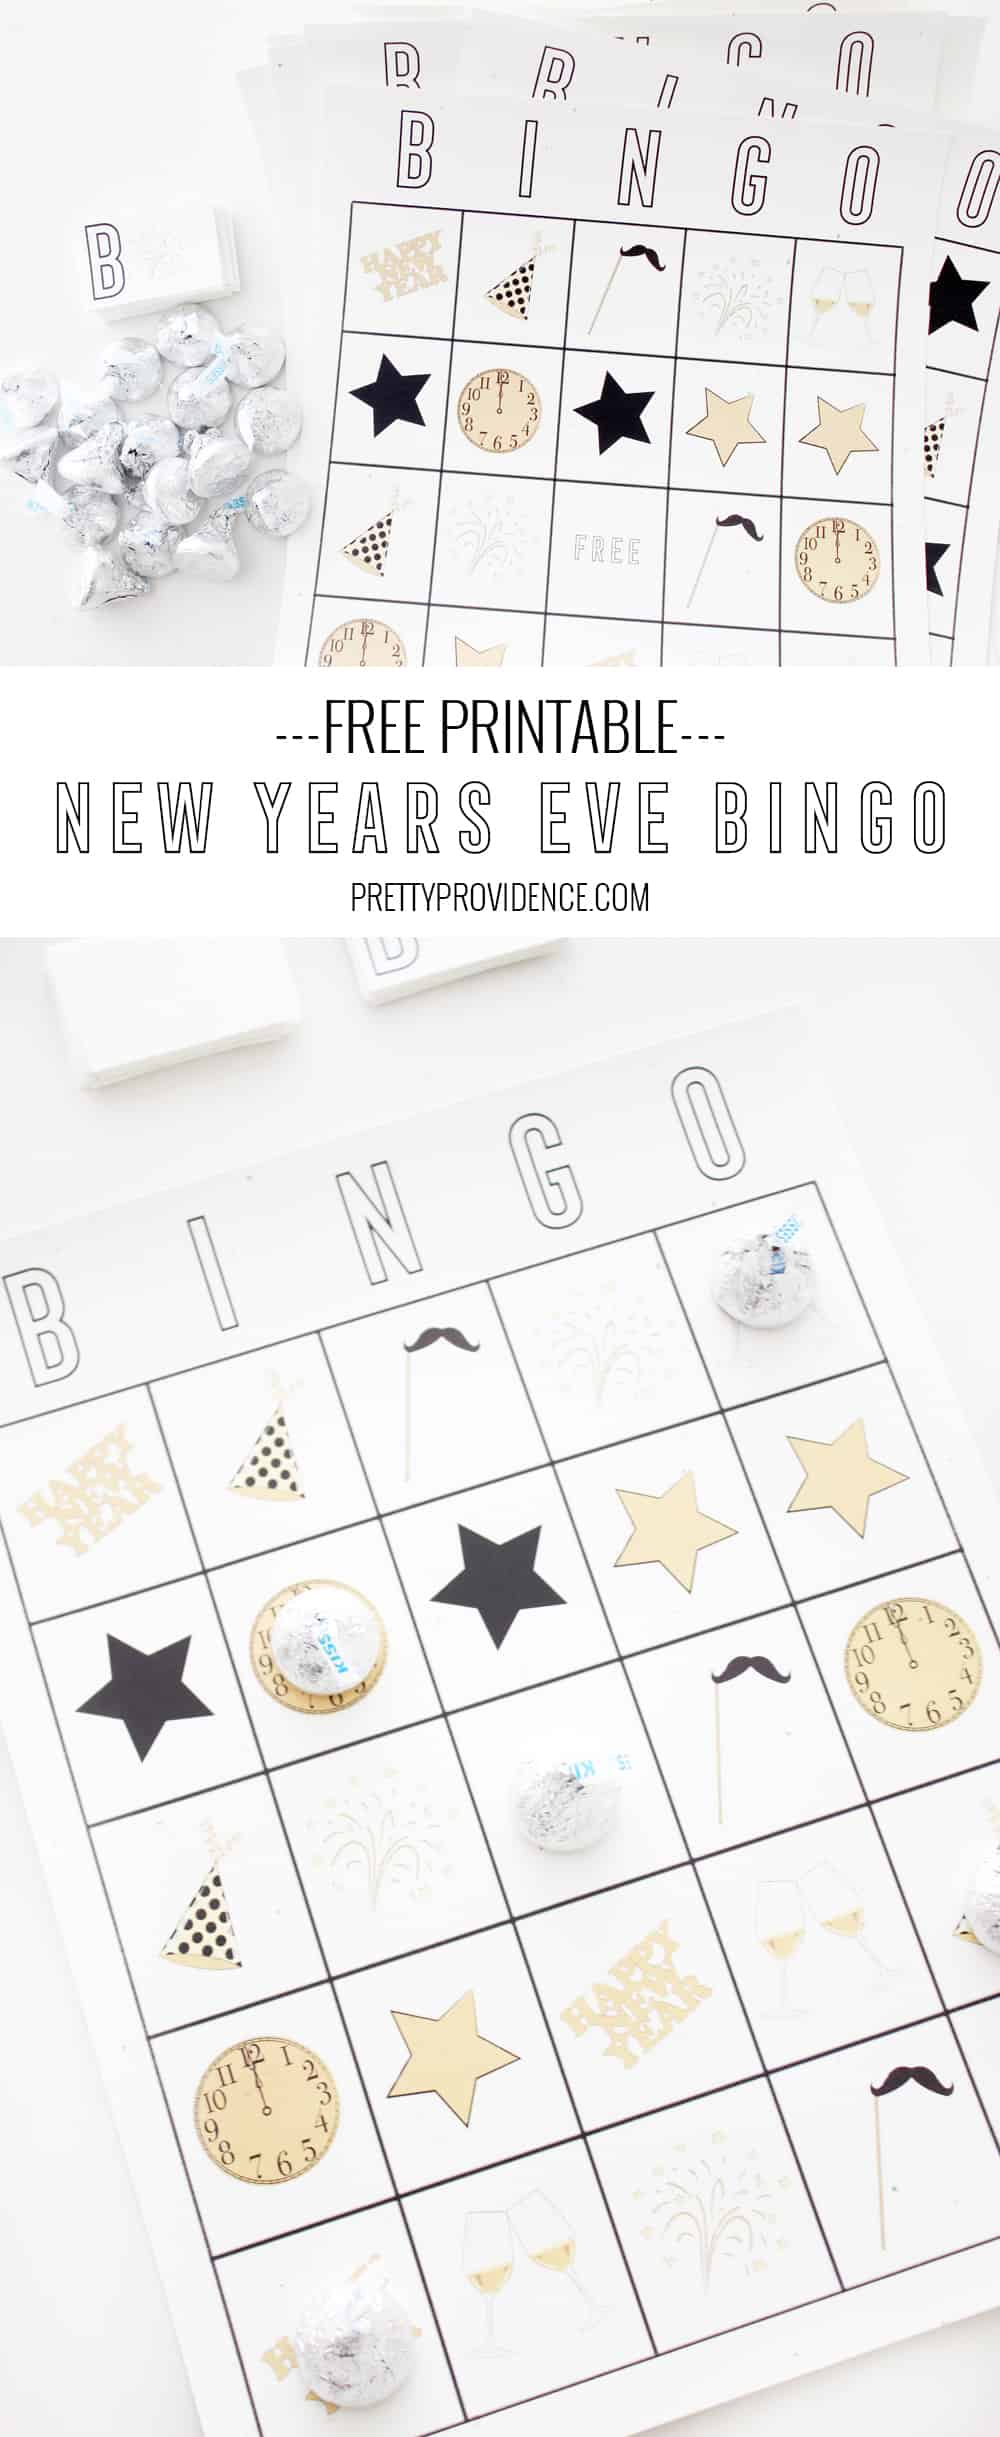 If you are looking for fun New Years Eve Games, look no further than this free printable New Years Eve Bingo!  Tons of fun for the whole family!